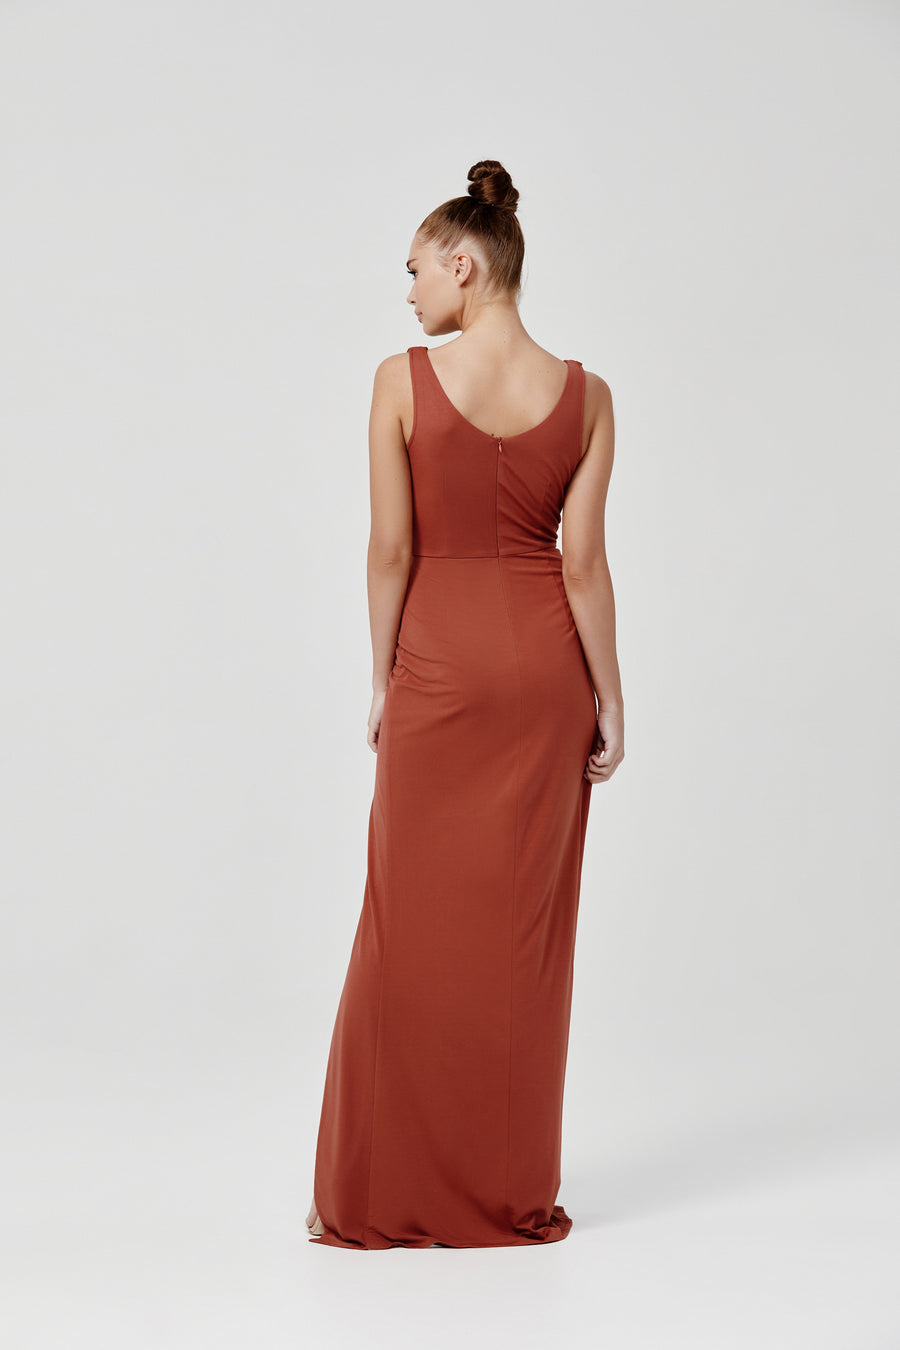 Naida Dress - Terracotta